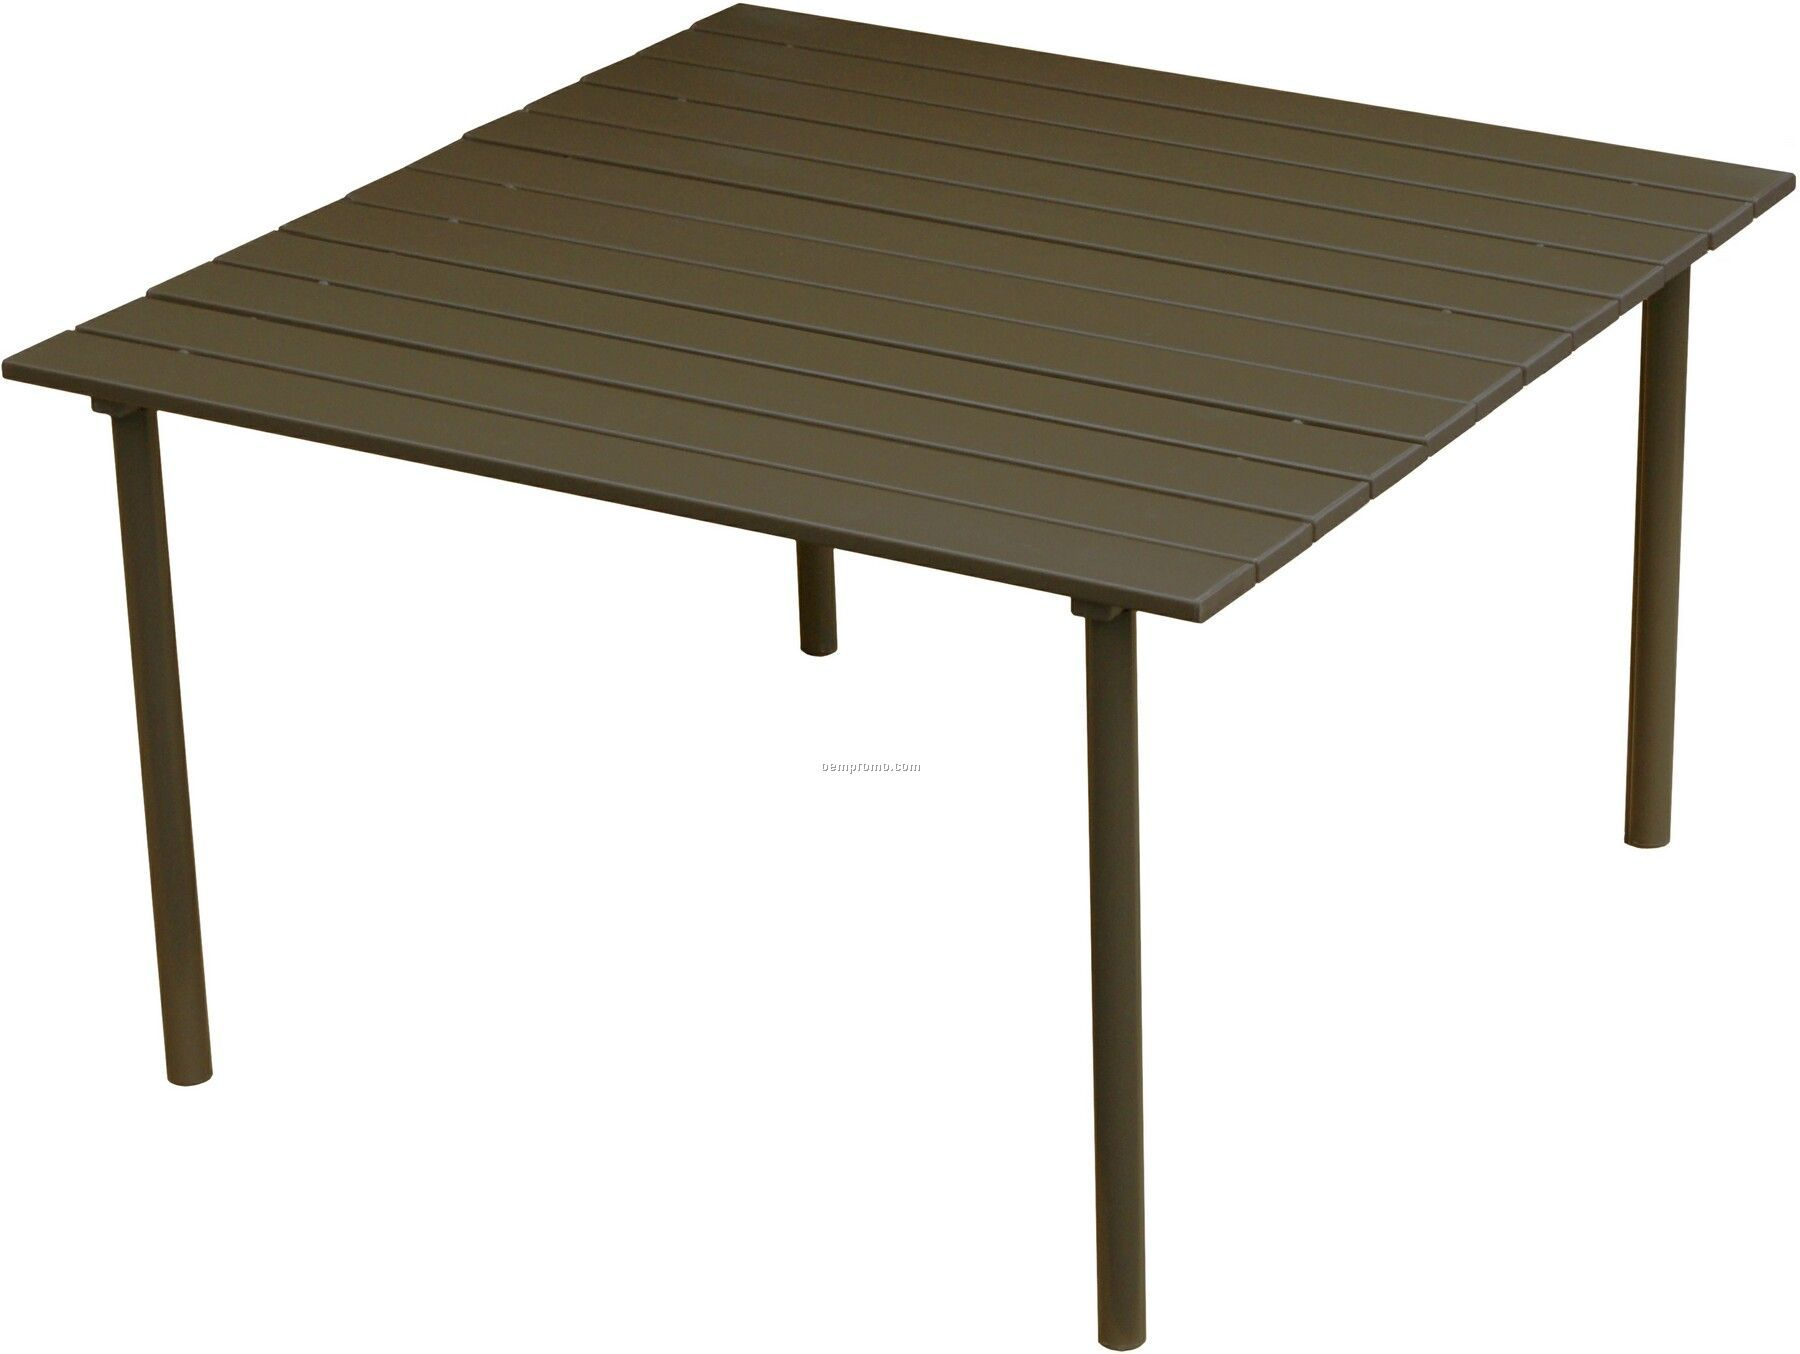 Collapsible Folding Low Brown Aluminum Table With Black Carry Bag